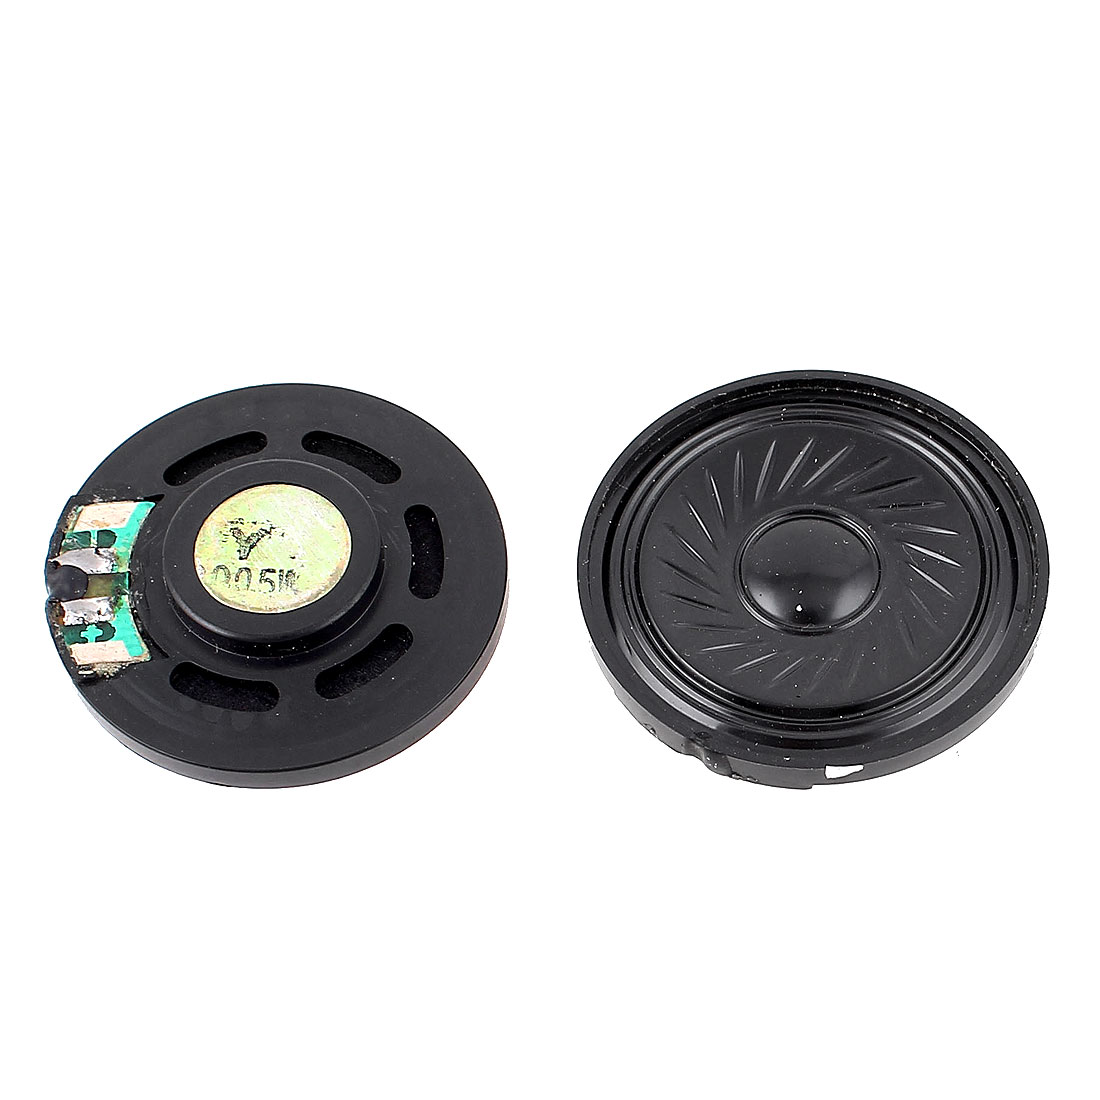 2 Pcs 0.5W 8 Ohm 36mm Round Inside Magnet Electronic Loudspeaker Black